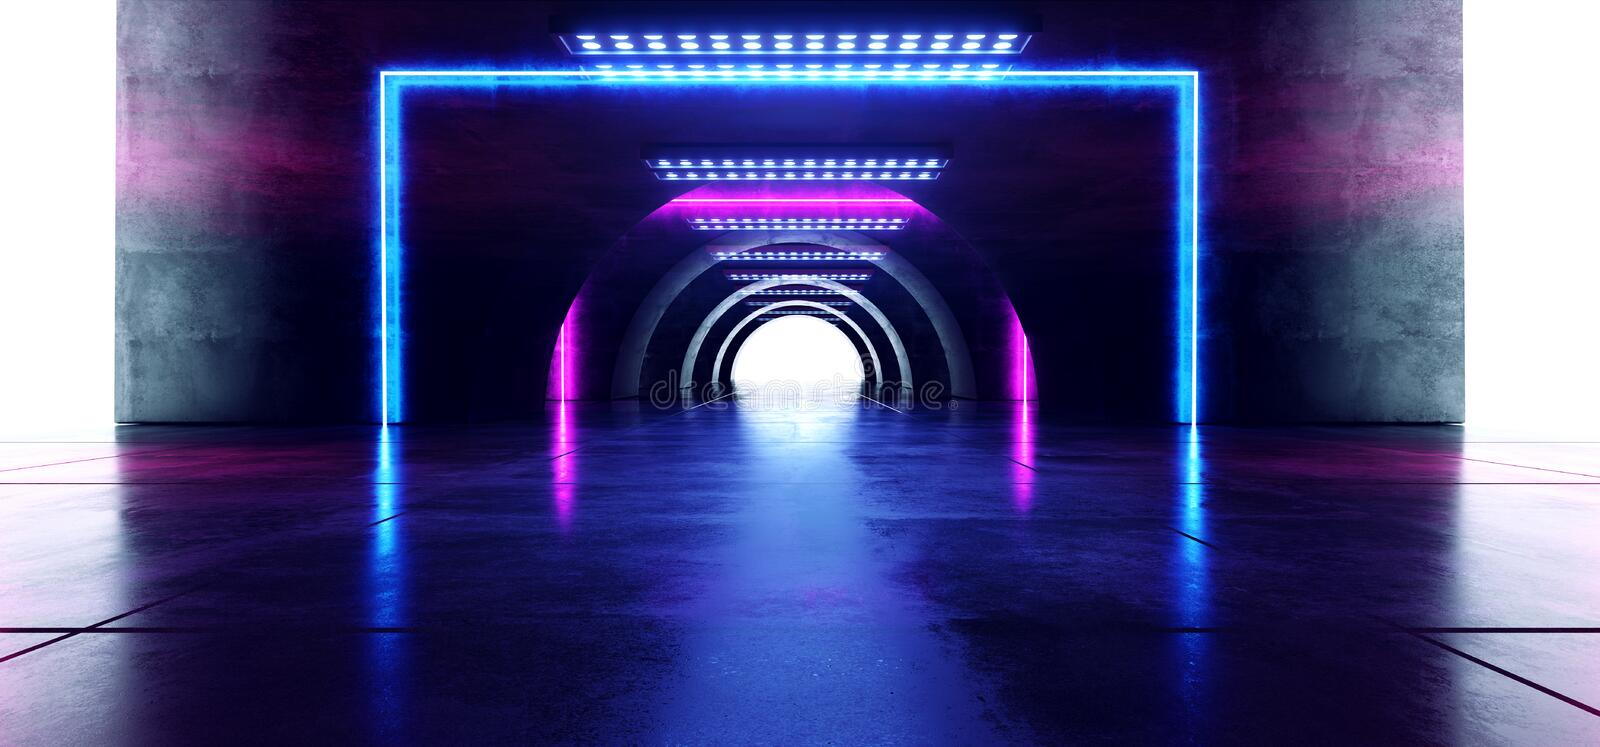 Futuristic Oval Circle Neon Glowing Purple Blue Rectangle Shaped Laser Beam Lights On Concrete Grunge Floor Reflective Tunnel. Corridor Dark Entrance Stage 3D stock illustration